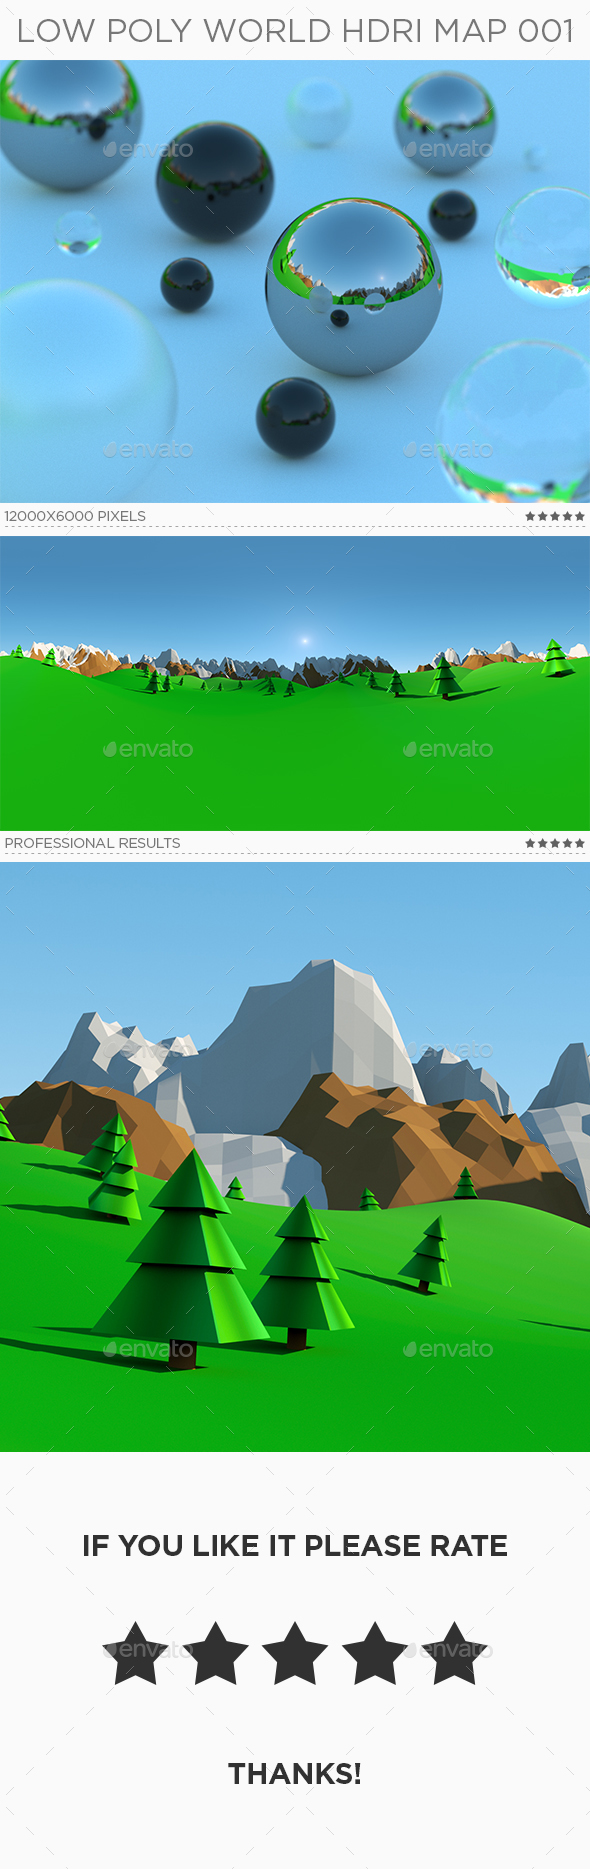 Low Poly World HDRi Map 001 - 3DOcean Item for Sale